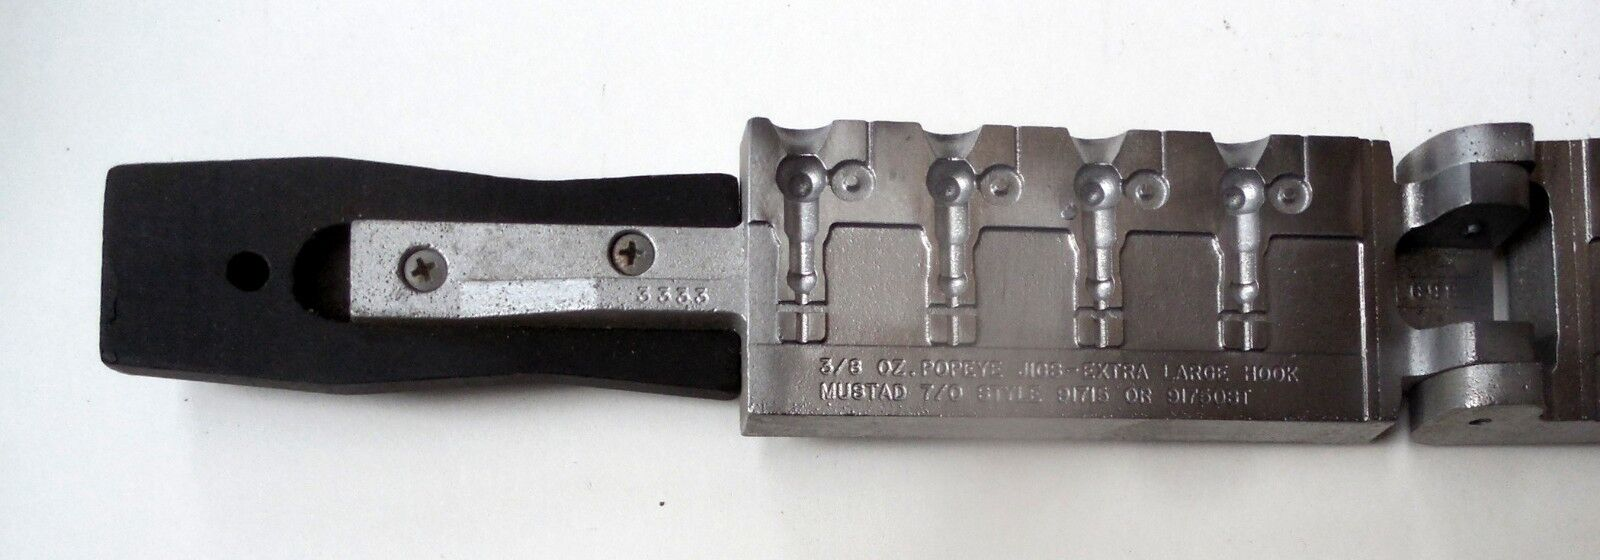 Do-It Corp. 3 8 oz. Popeye Jig Mold Model  JIS-4-38X Used